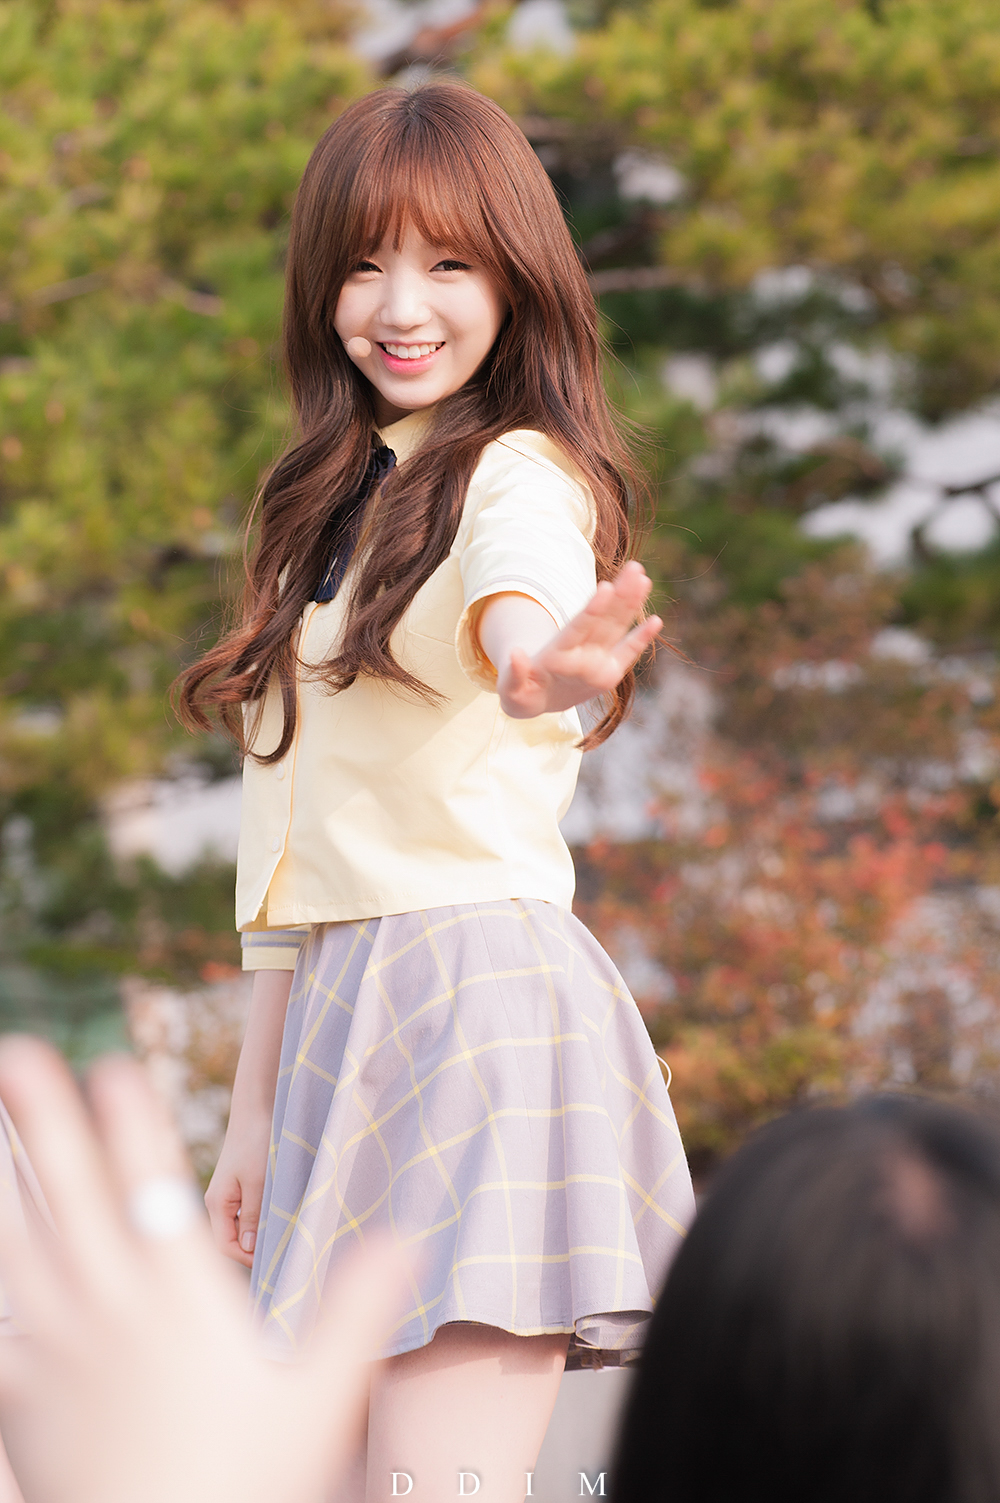 Iphone Wave Wallpaper Kei Android Iphone Wallpaper 30572 Asiachan Kpop Image